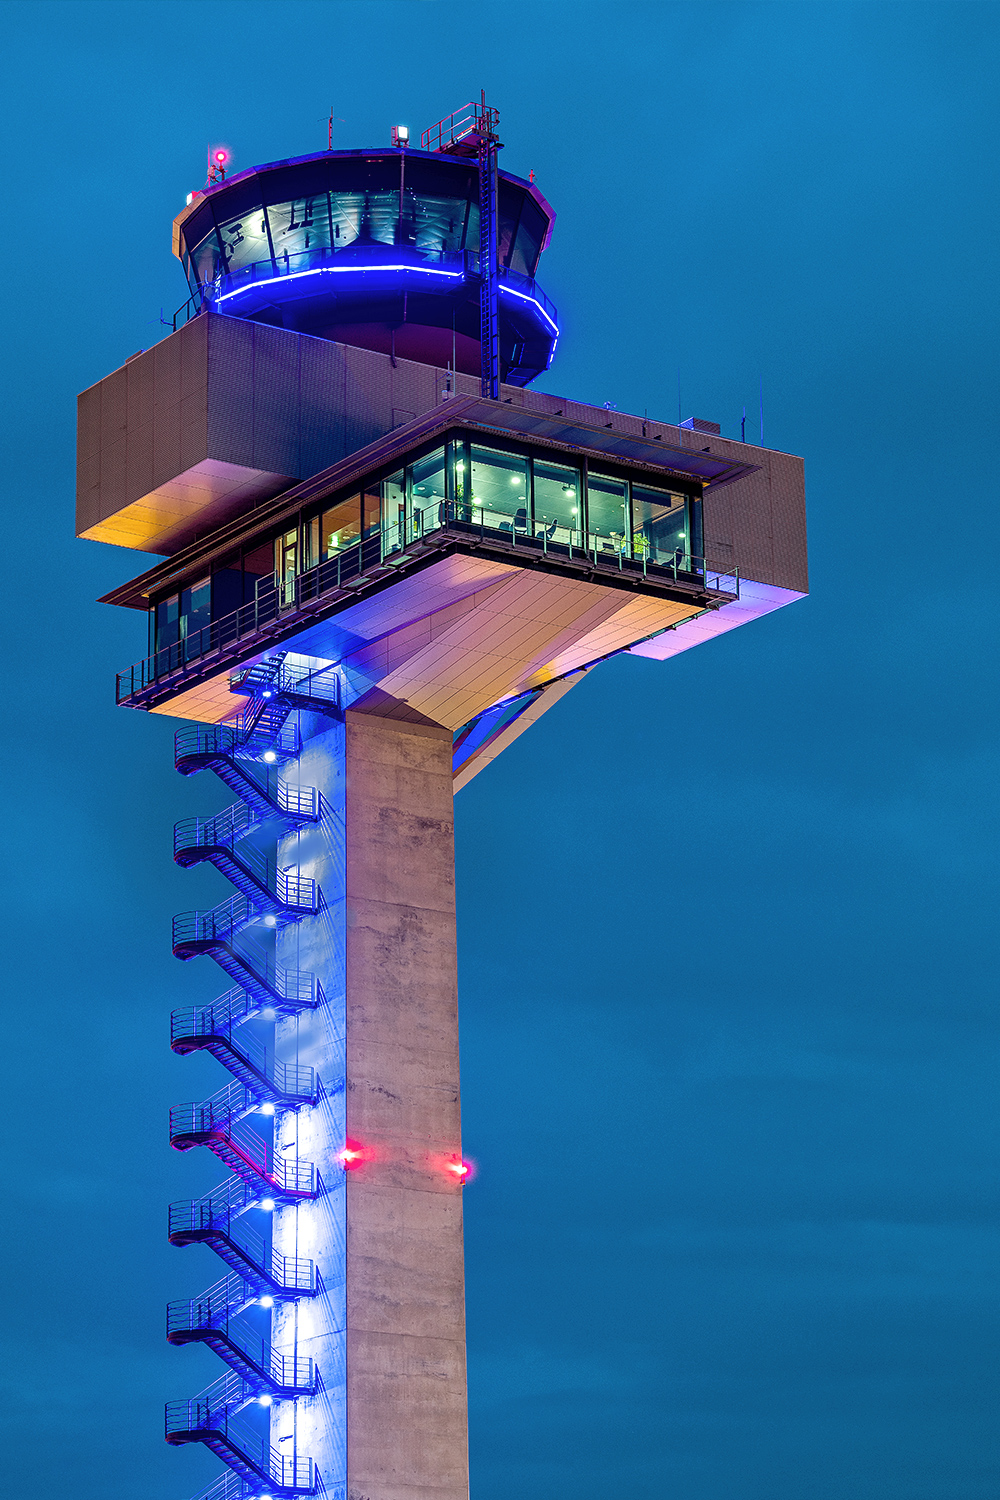 The BER-Tower at night